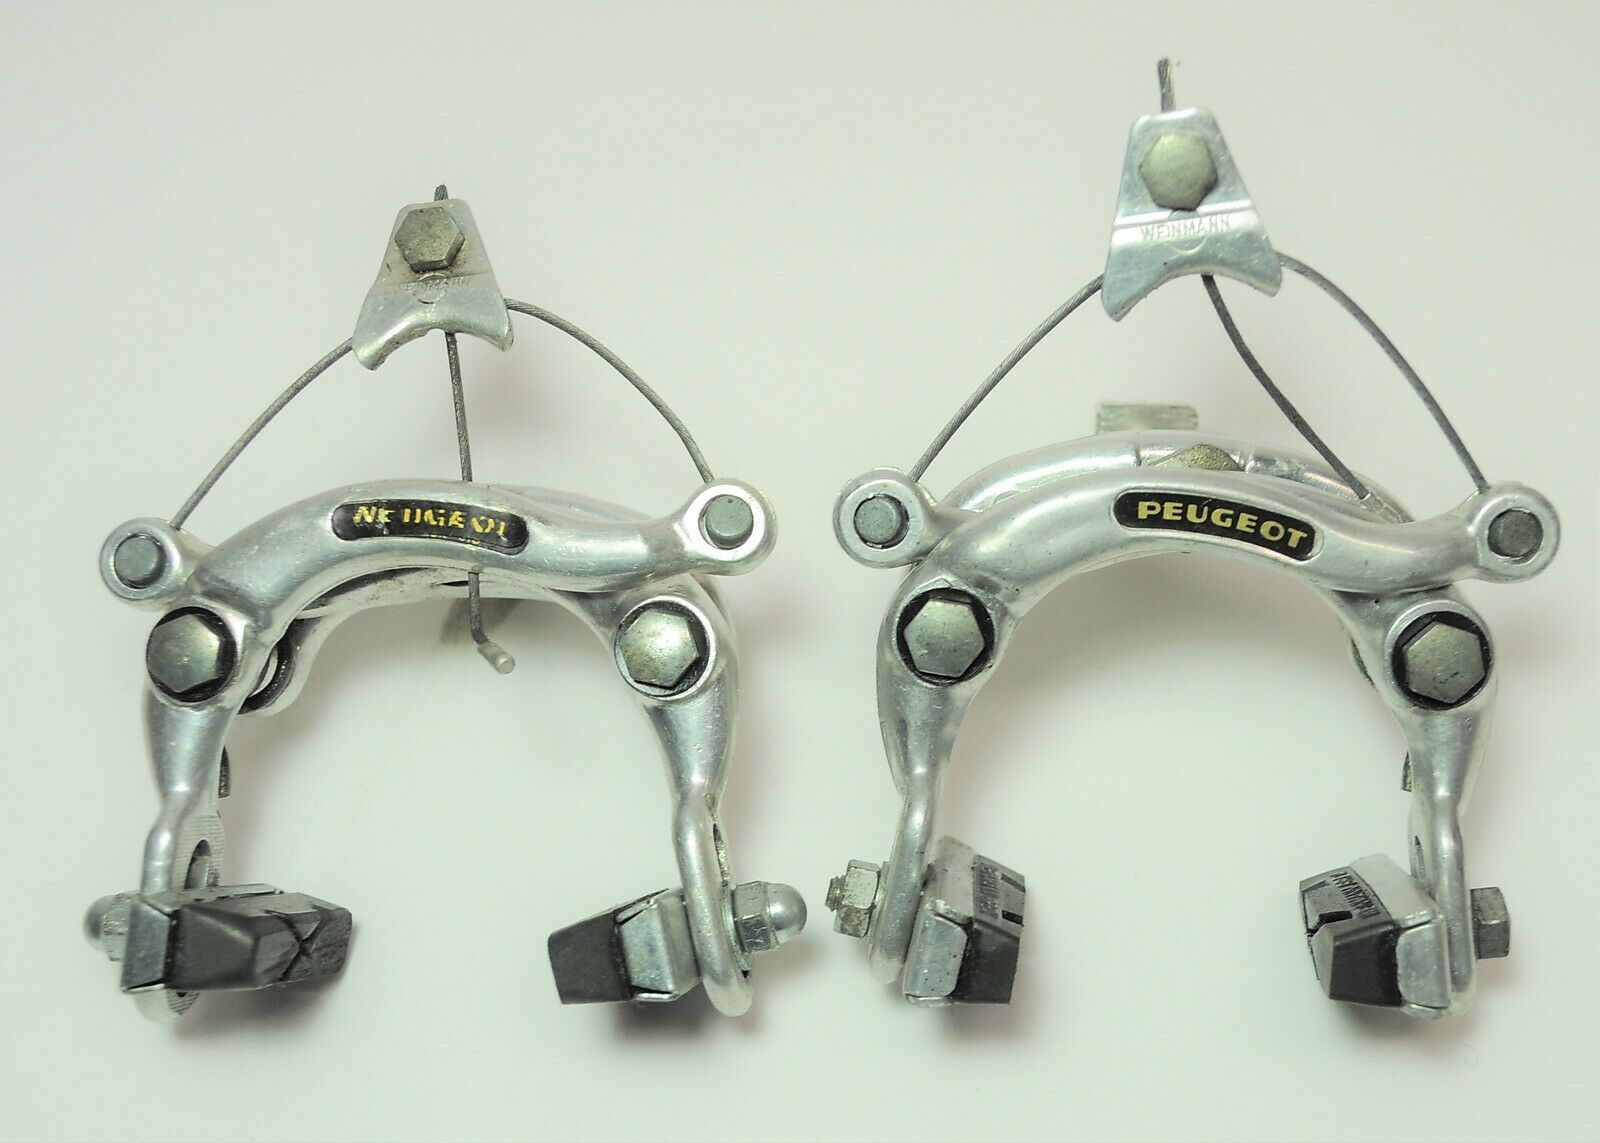 VINTAGE WEINMANN PEUGEOT 610 BICYCLE FRONT & REAR CENTERPULL BRAKES SET